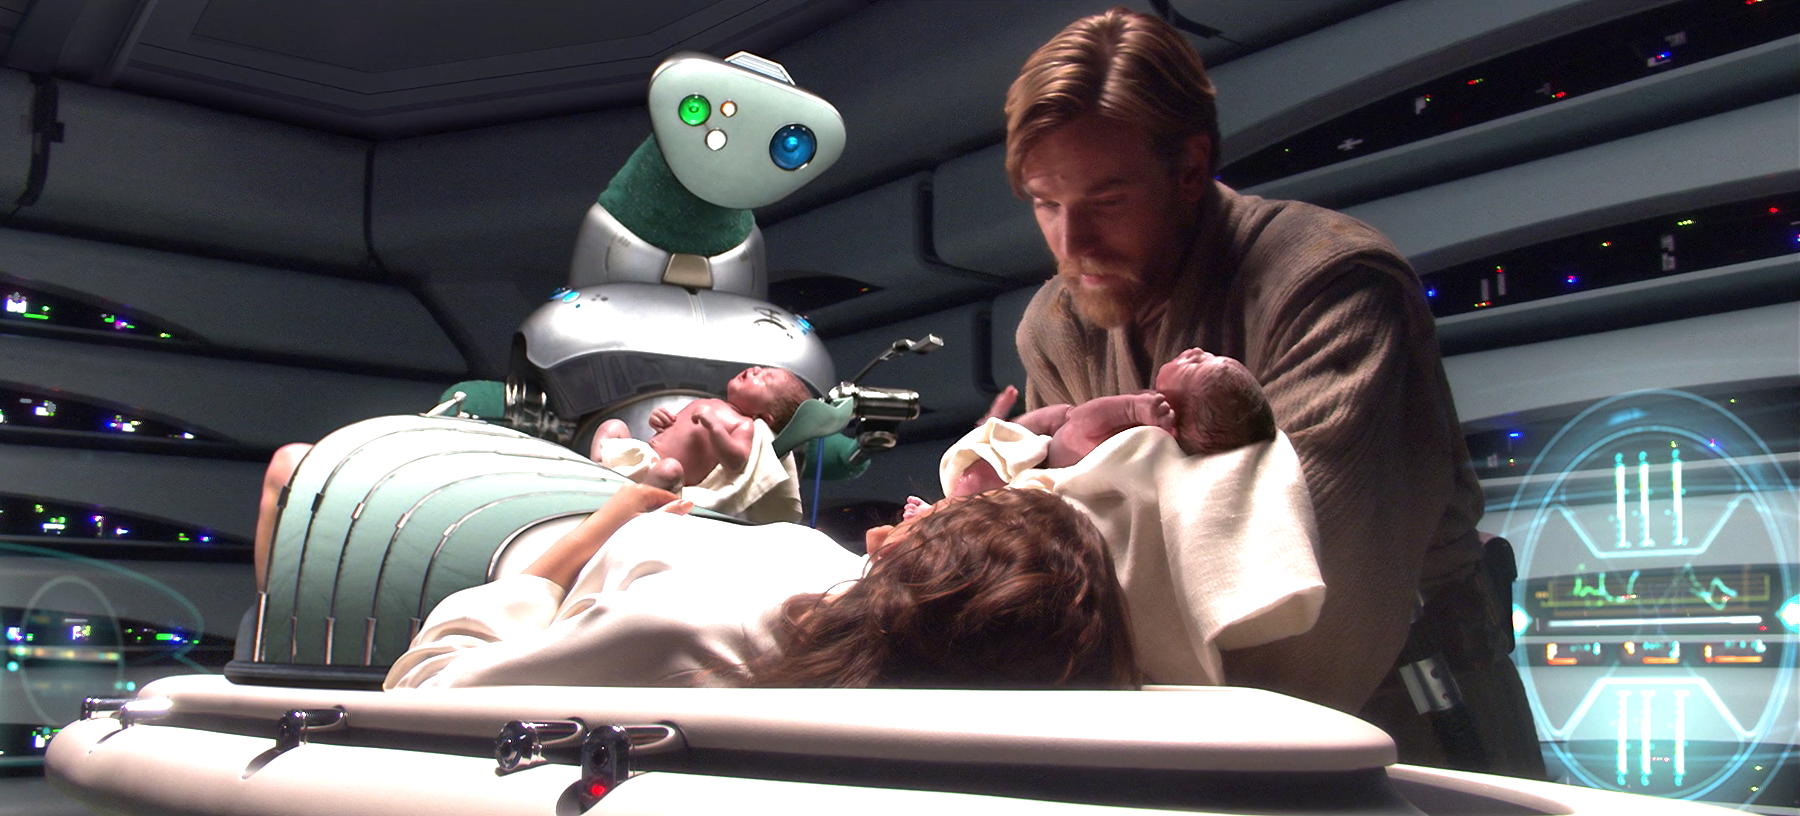 Midwife_droid_1